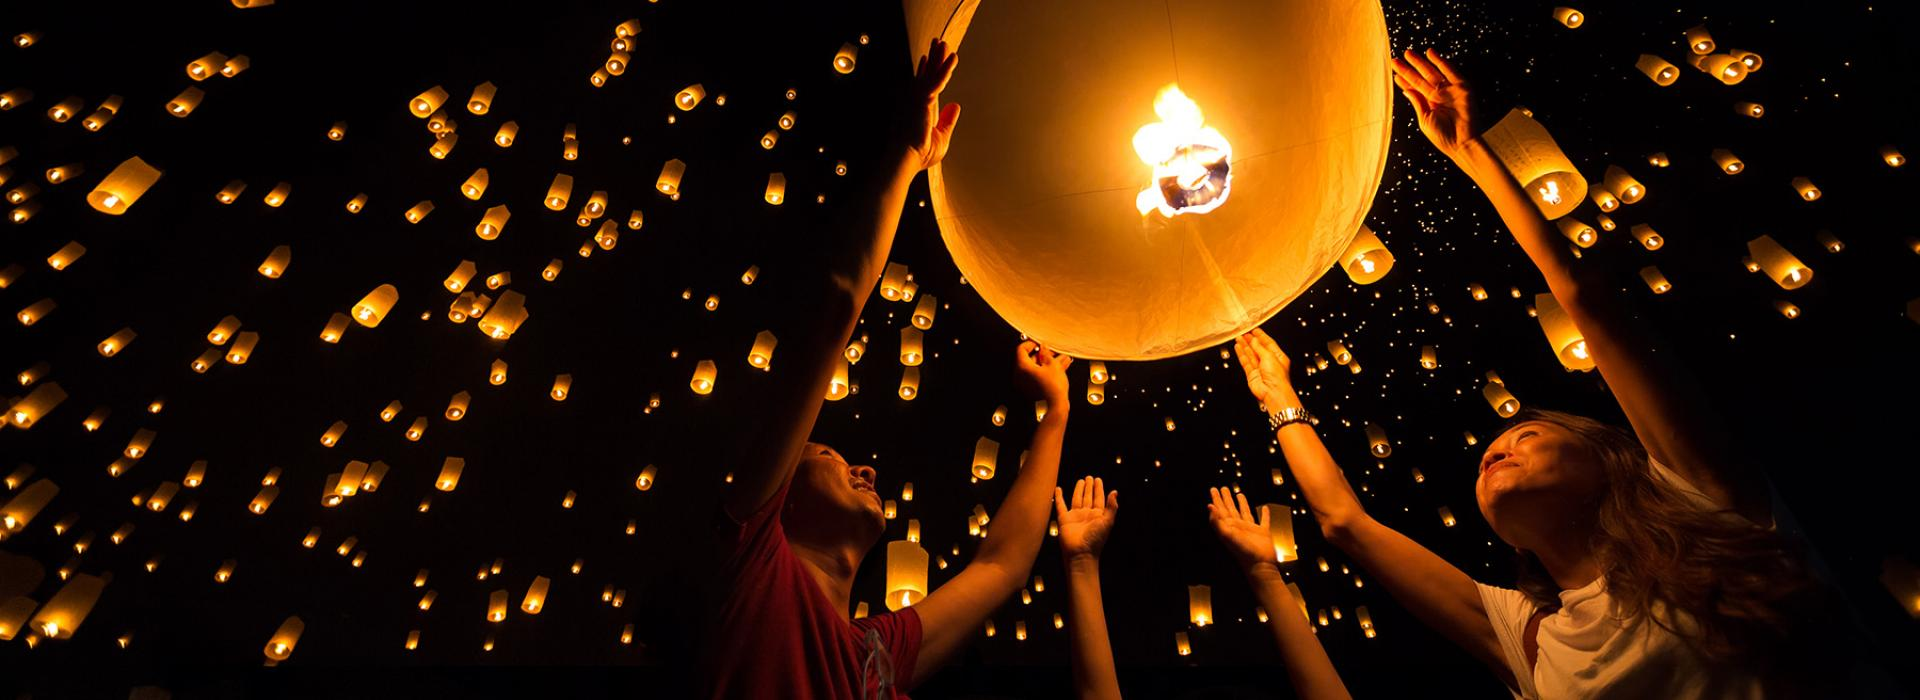 People releasing lanterns into the sky at night.